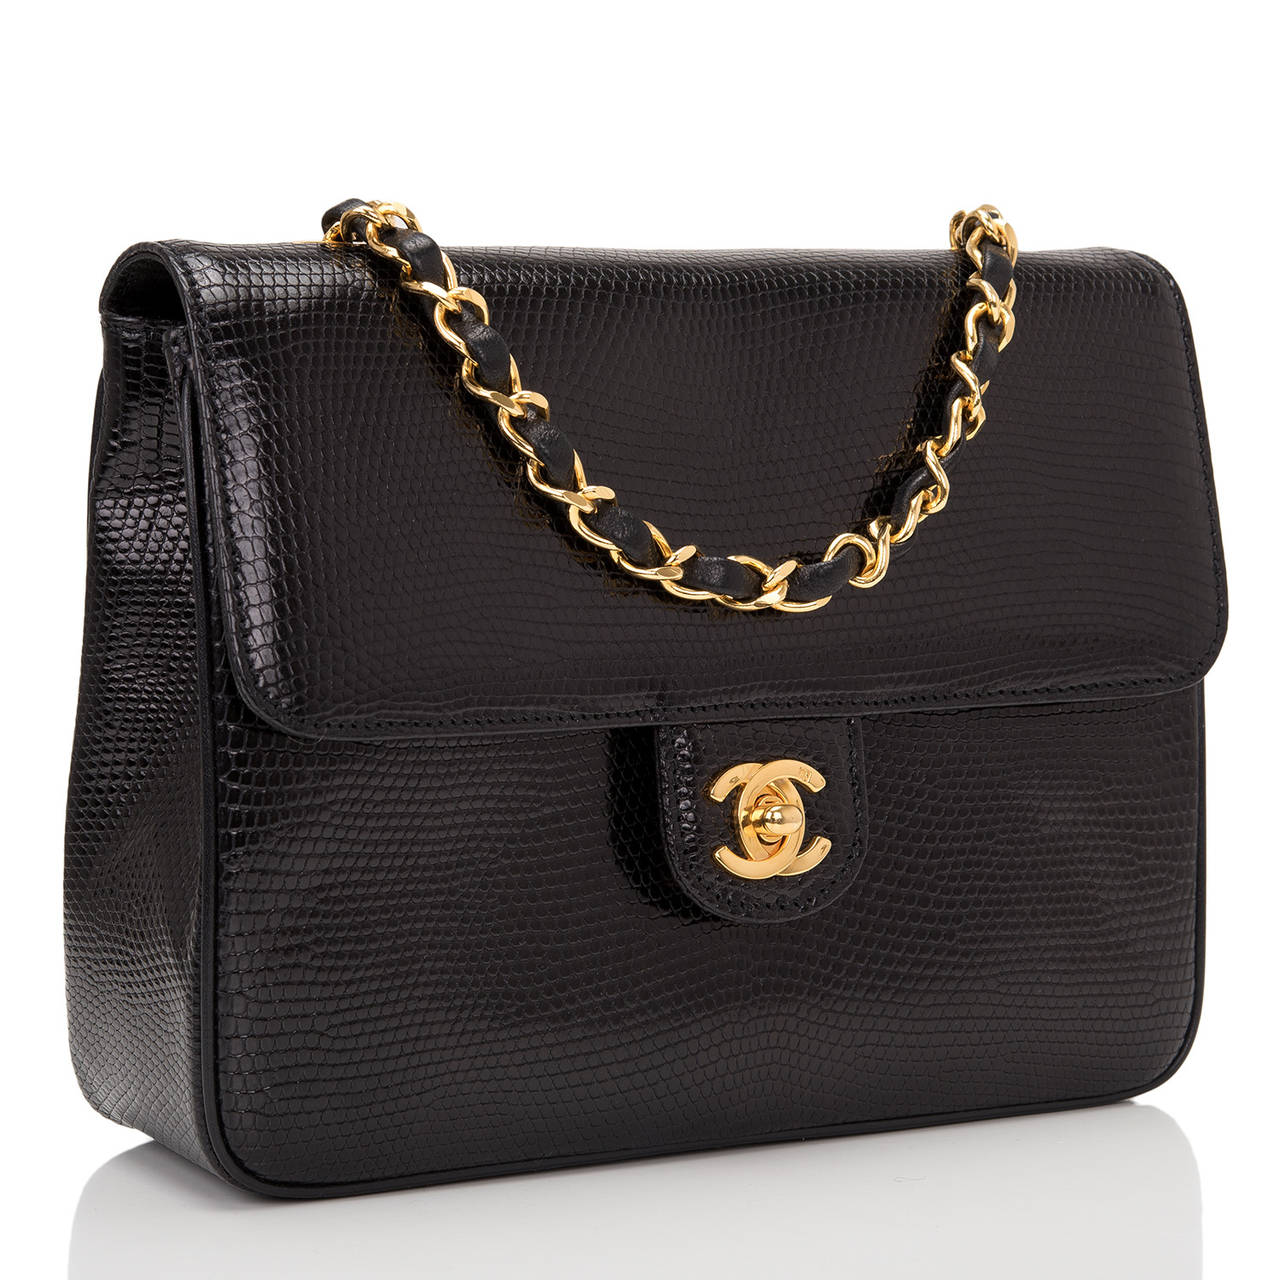 Chanel Large Classic Mini in black lizard with front flap and gold tone hardware, signature CC turnlock closure, and interwoven gold tone chain link and black leather shoulder strap.  The interior is lined in black leather with a zipper pocket